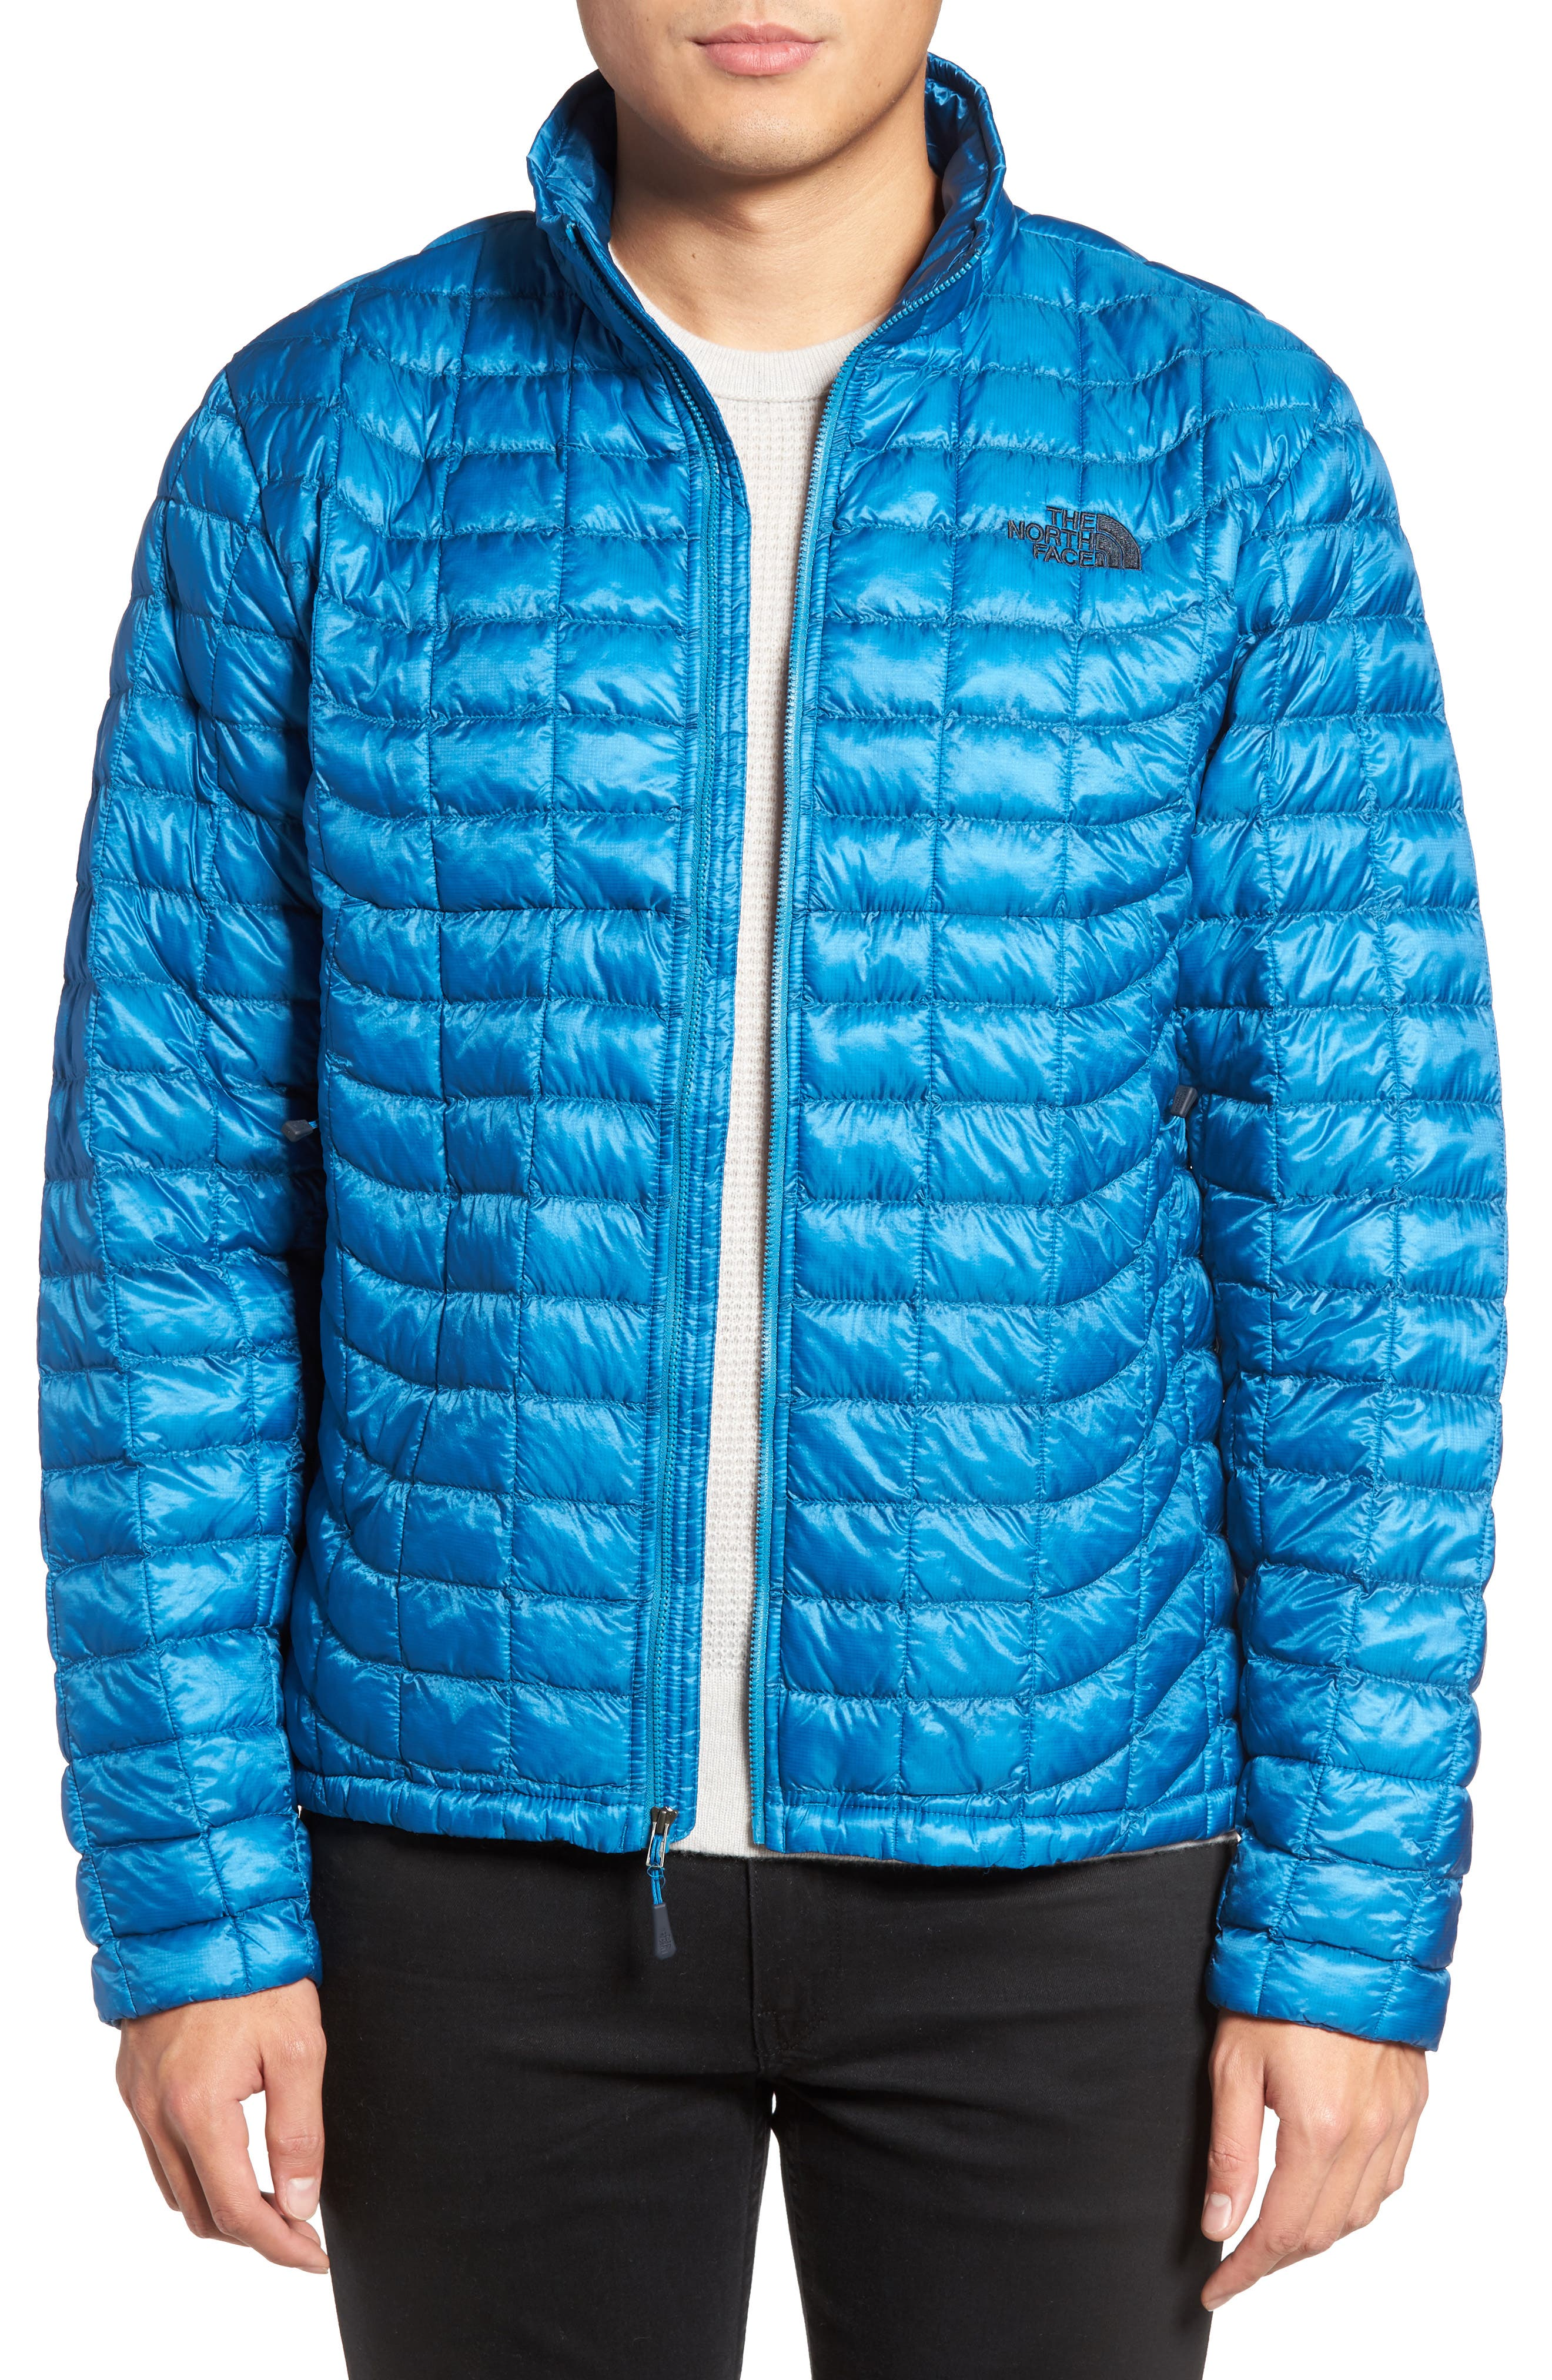 PrimaLoft<sup>®</sup> ThermoBall<sup>™</sup> Full Zip Jacket,                             Main thumbnail 21, color,